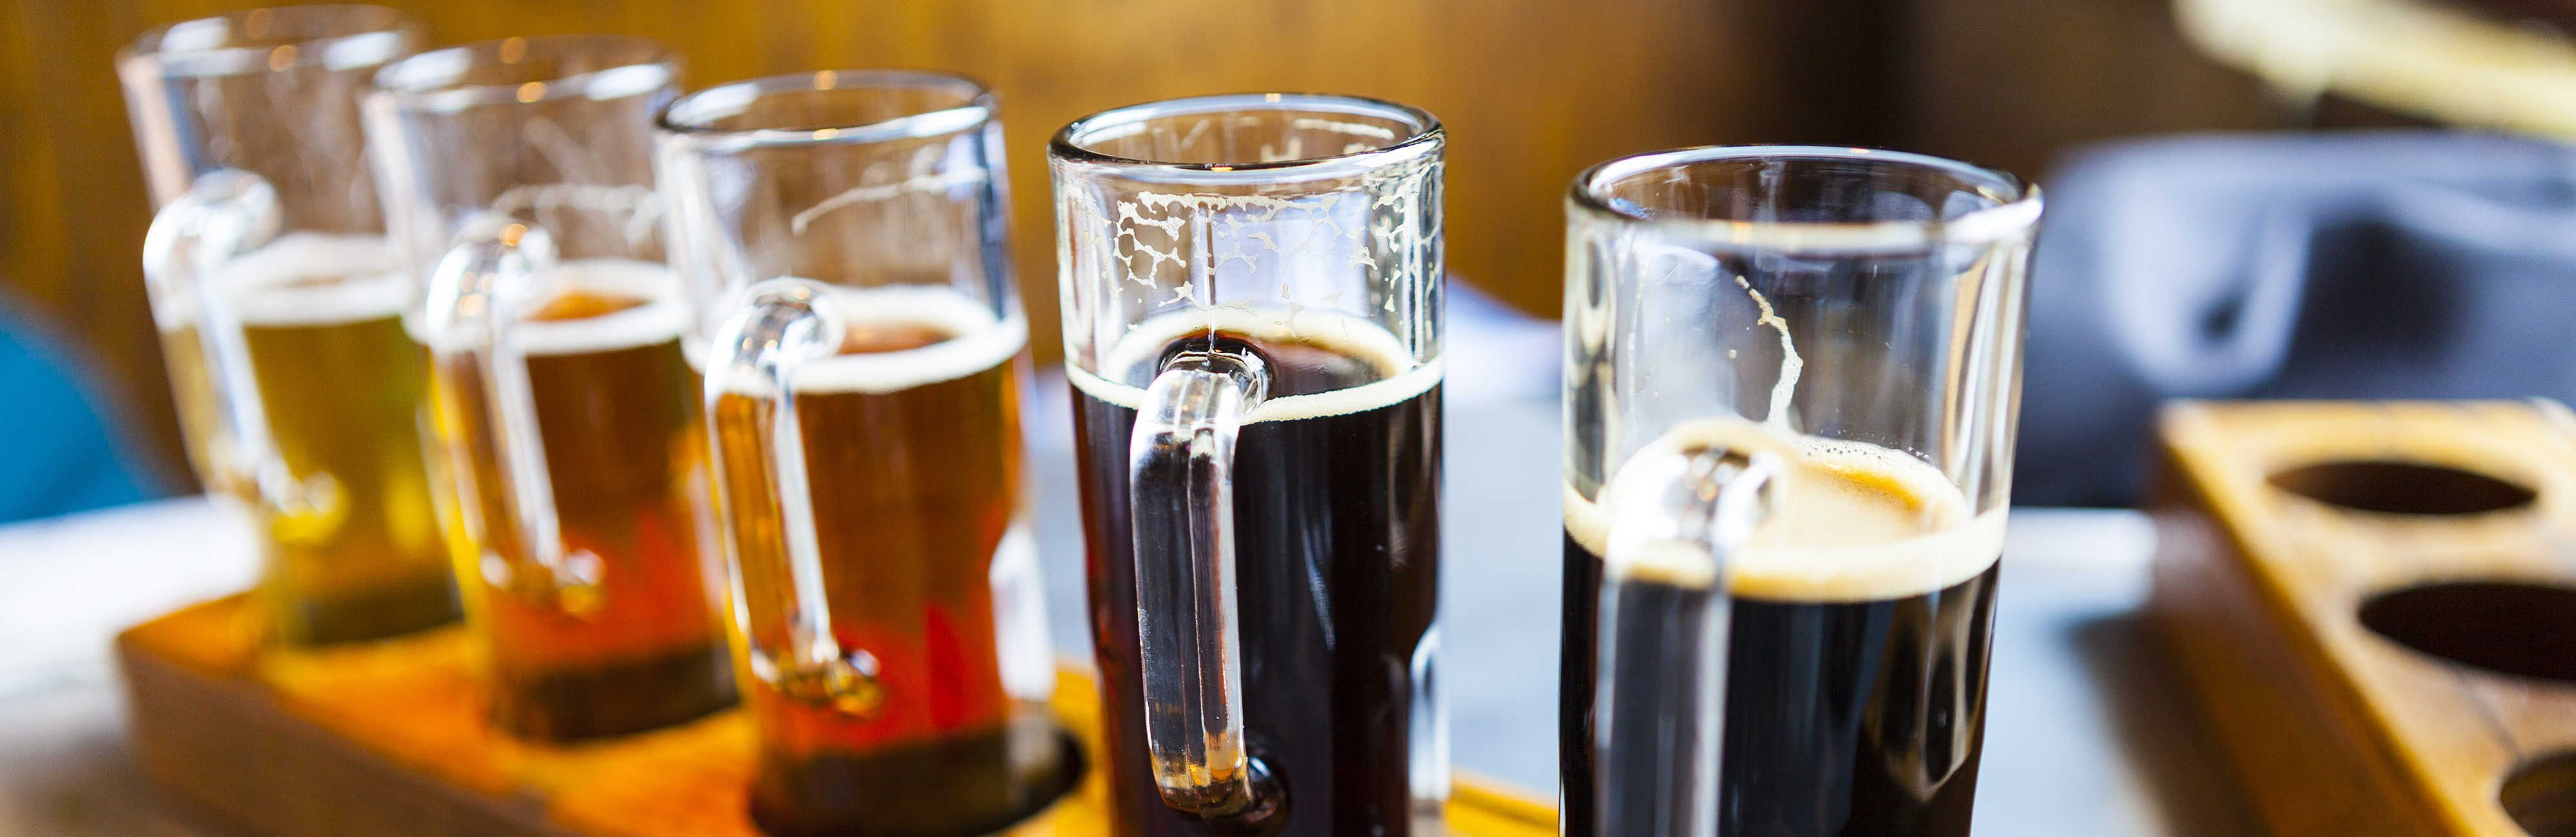 Homebrew Recipes For Making Homemade Beer In The Comfort Of